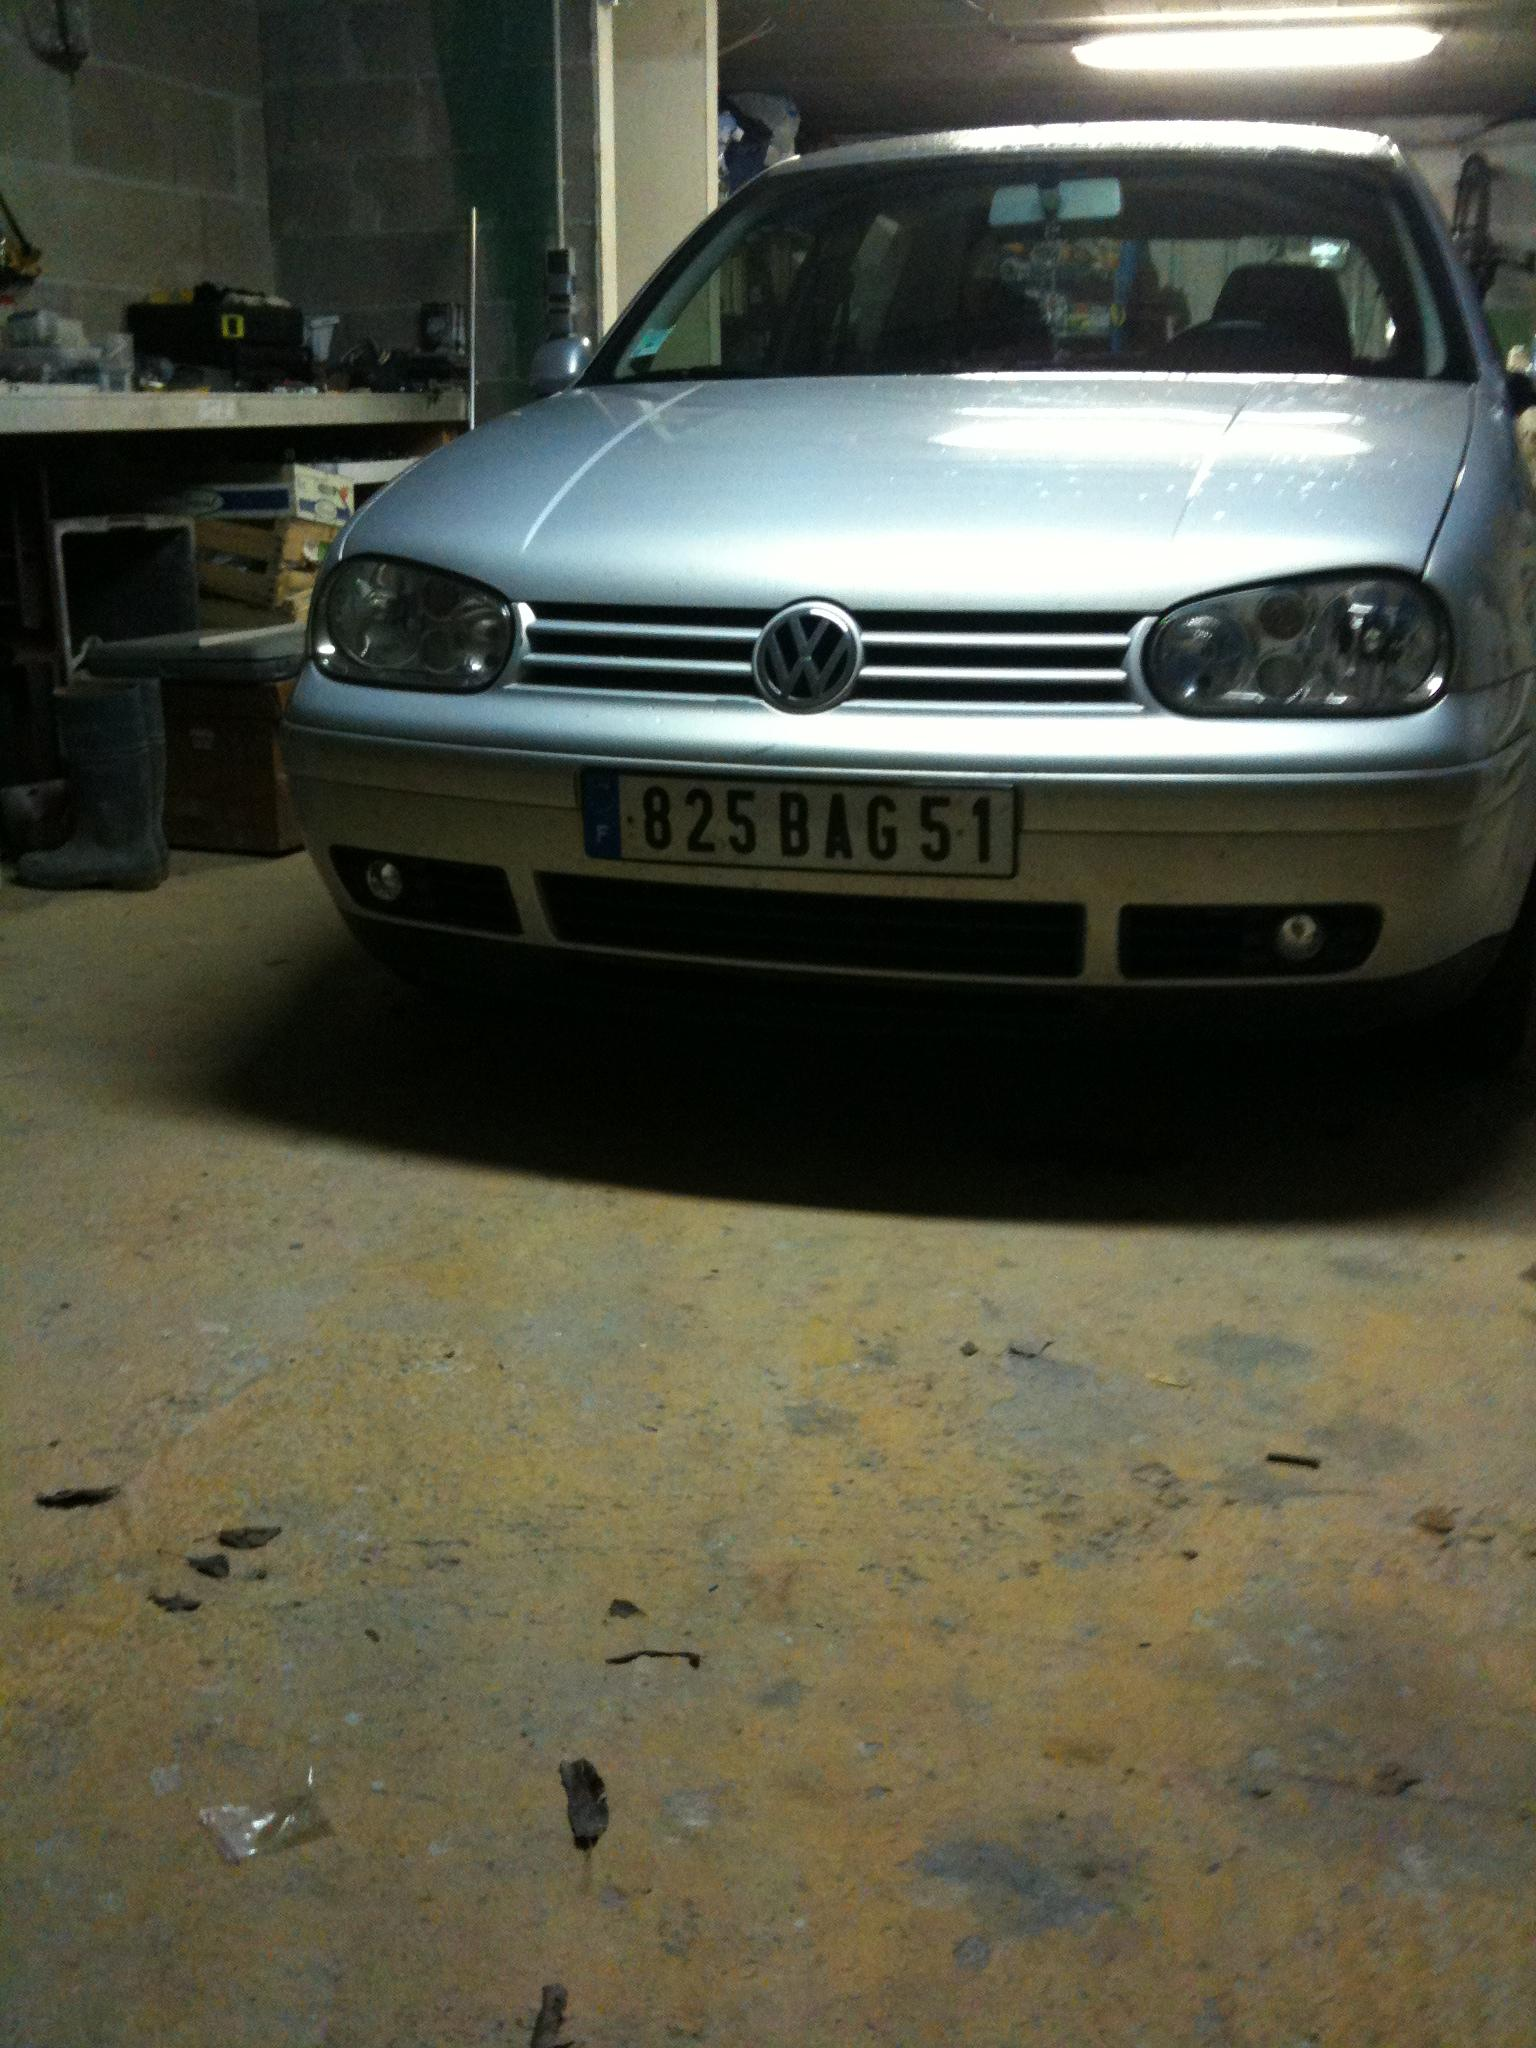 Golf iv tdi 110 de garage des golf iv tdi 110 for Garage skoda 92